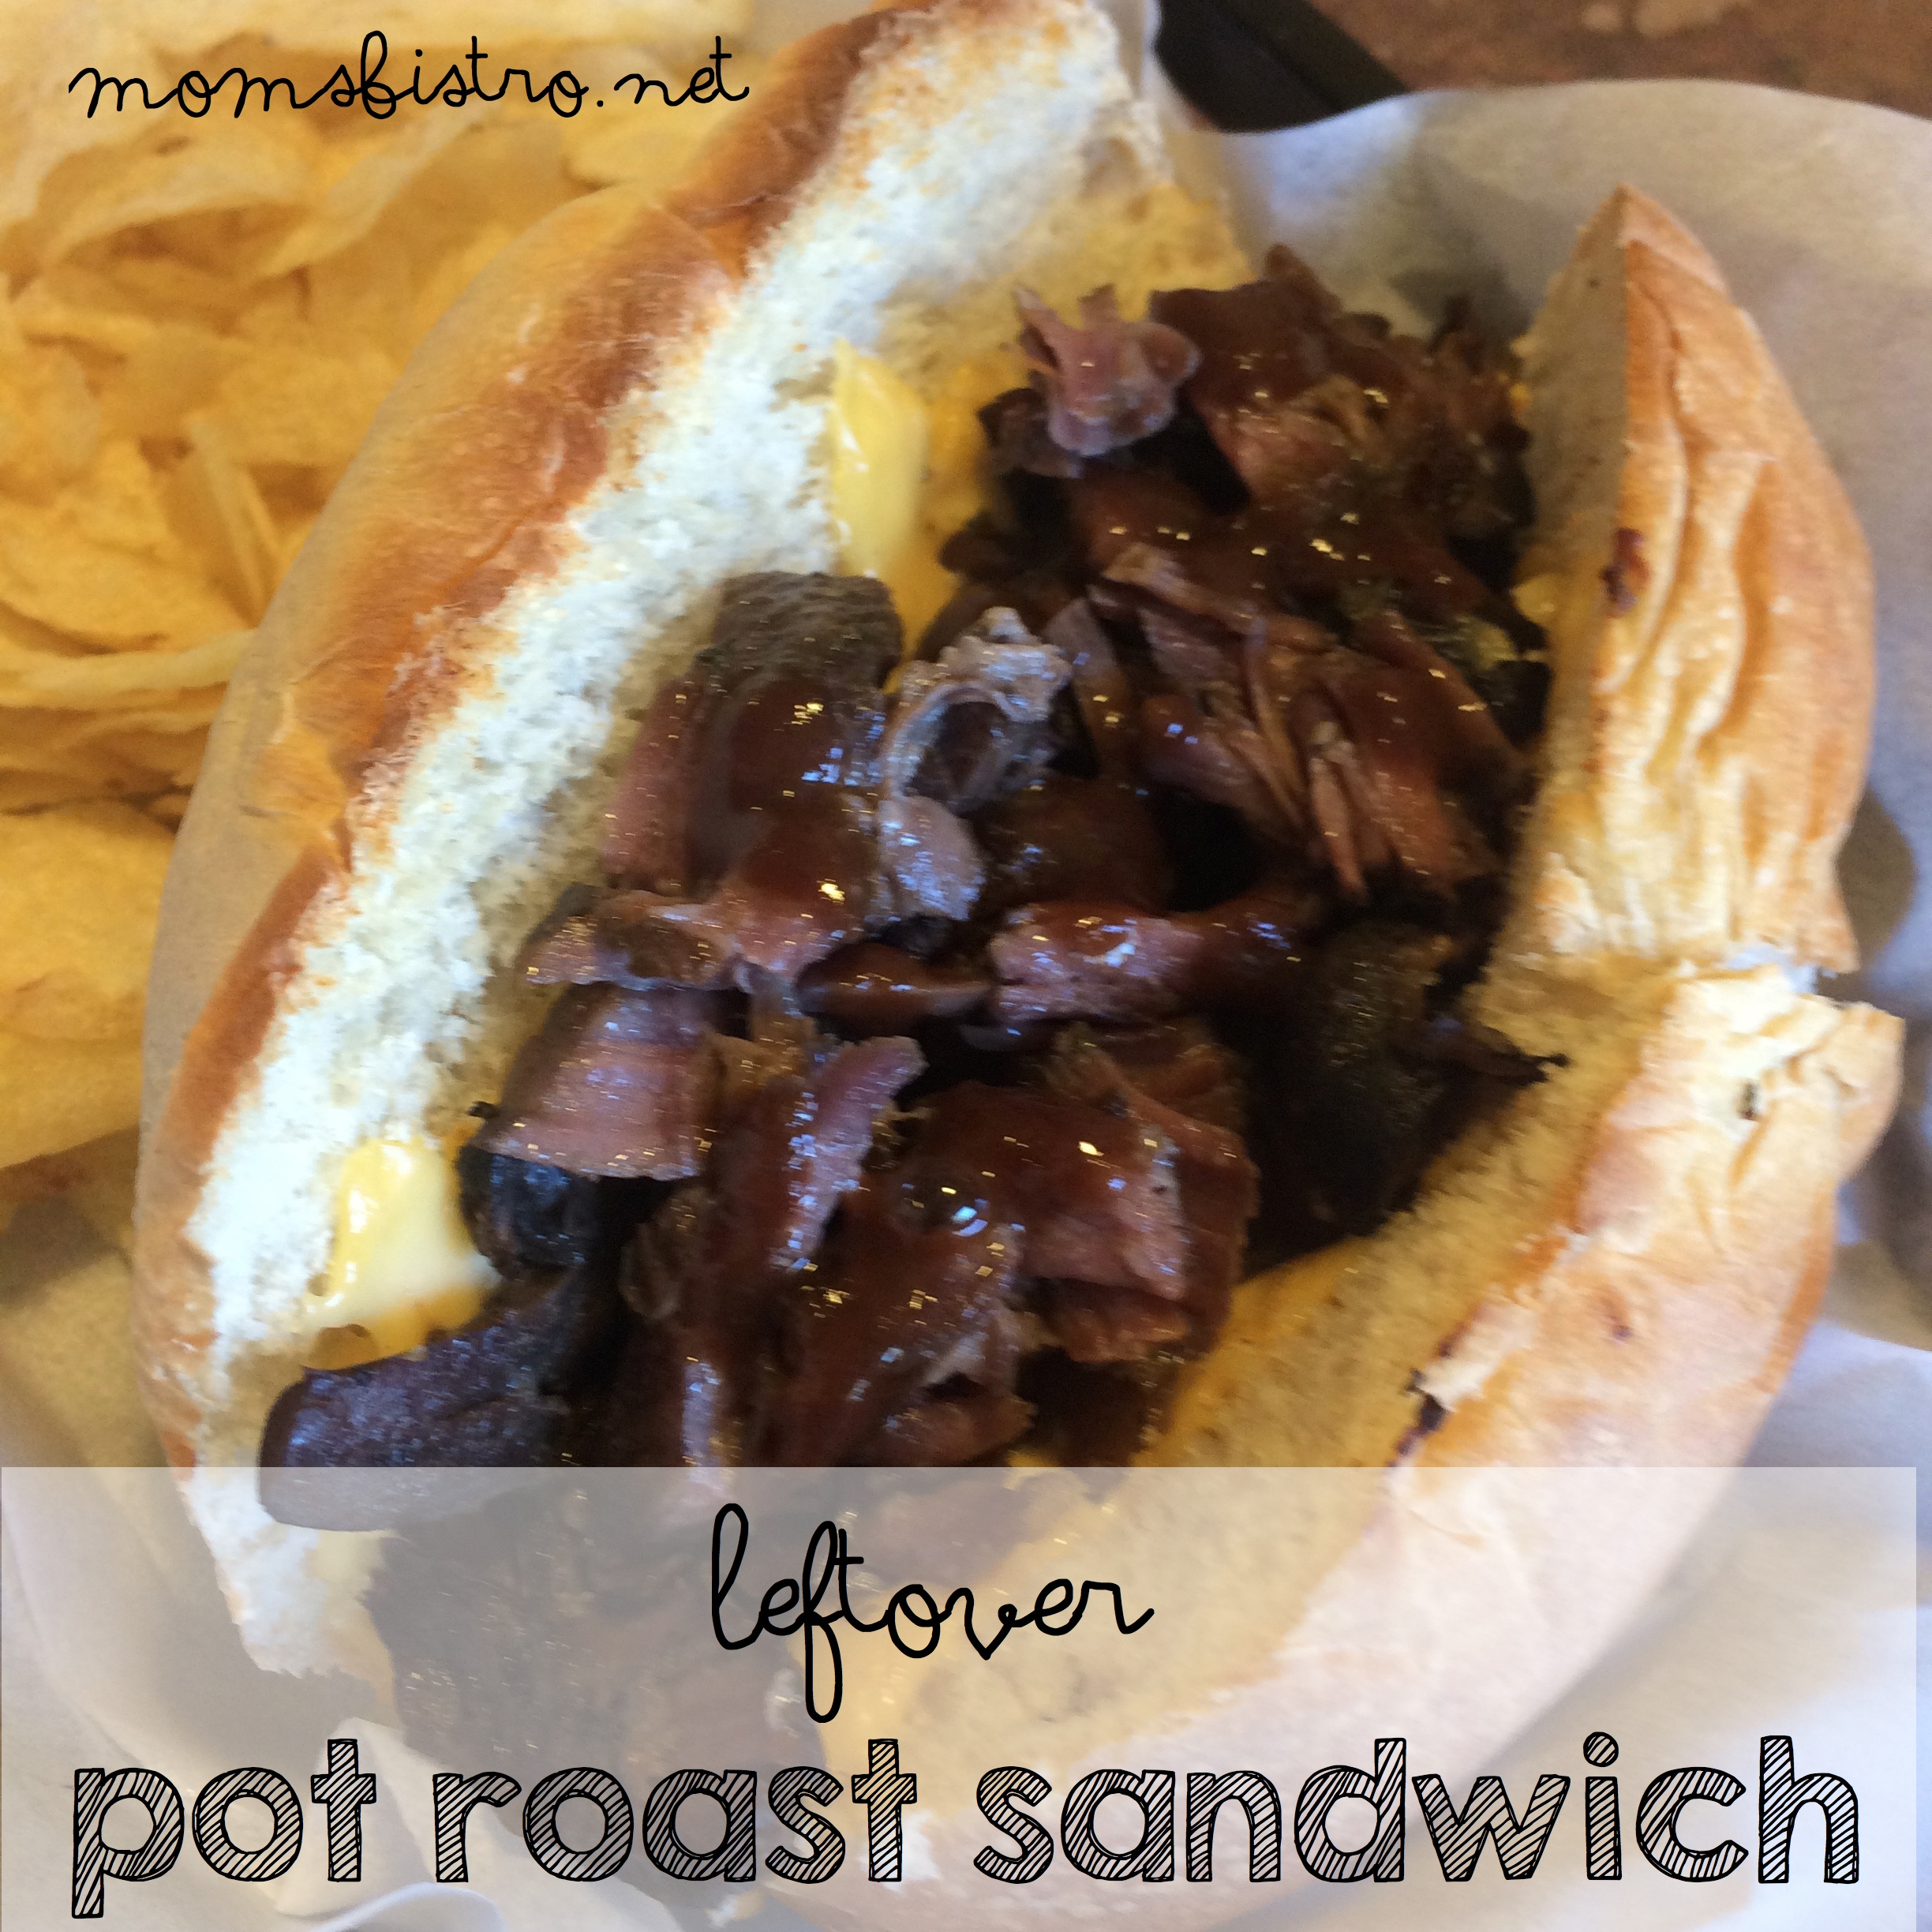 This 10 Minute Dinner Is The Perfect Meal For Busy Nights – 10-Minute Leftover Pot Roast Sandwiches